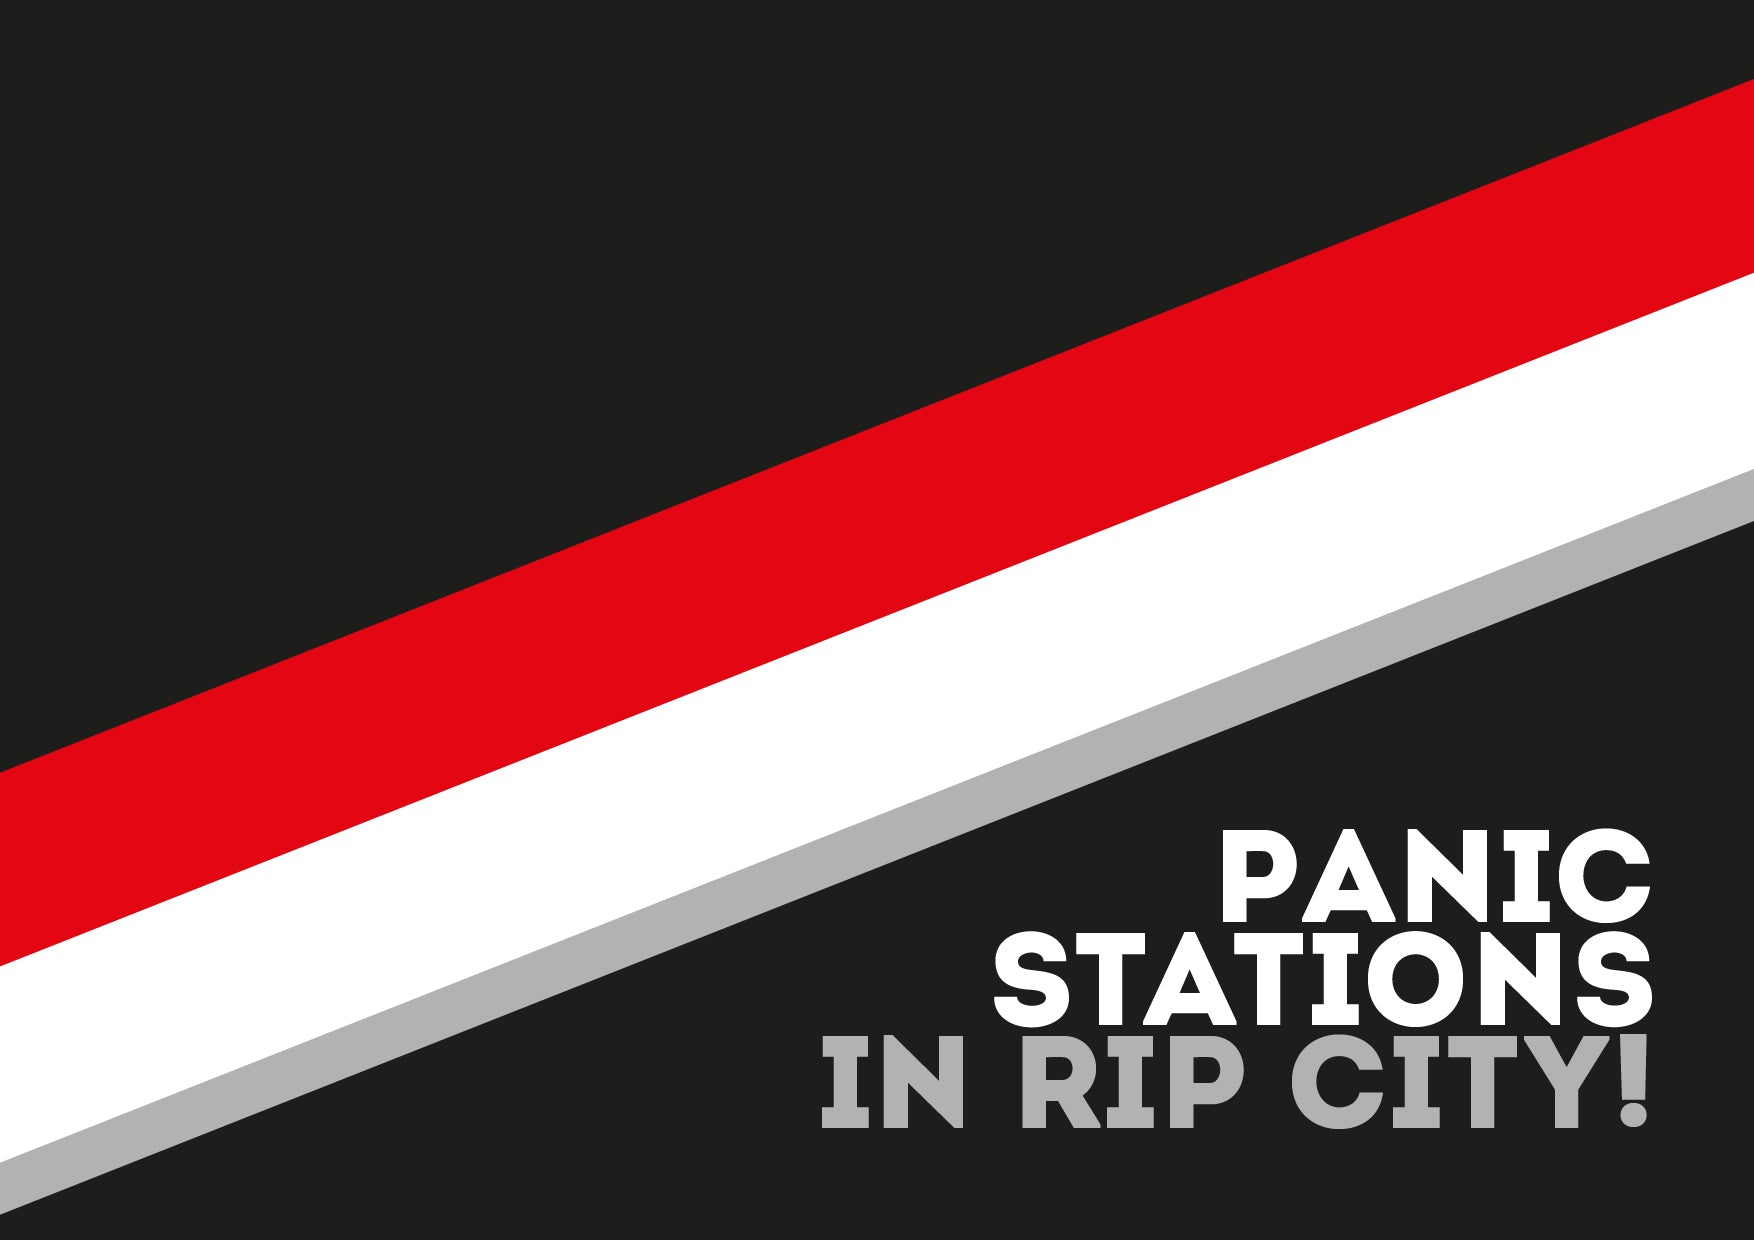 Panic Stations in Rip City!